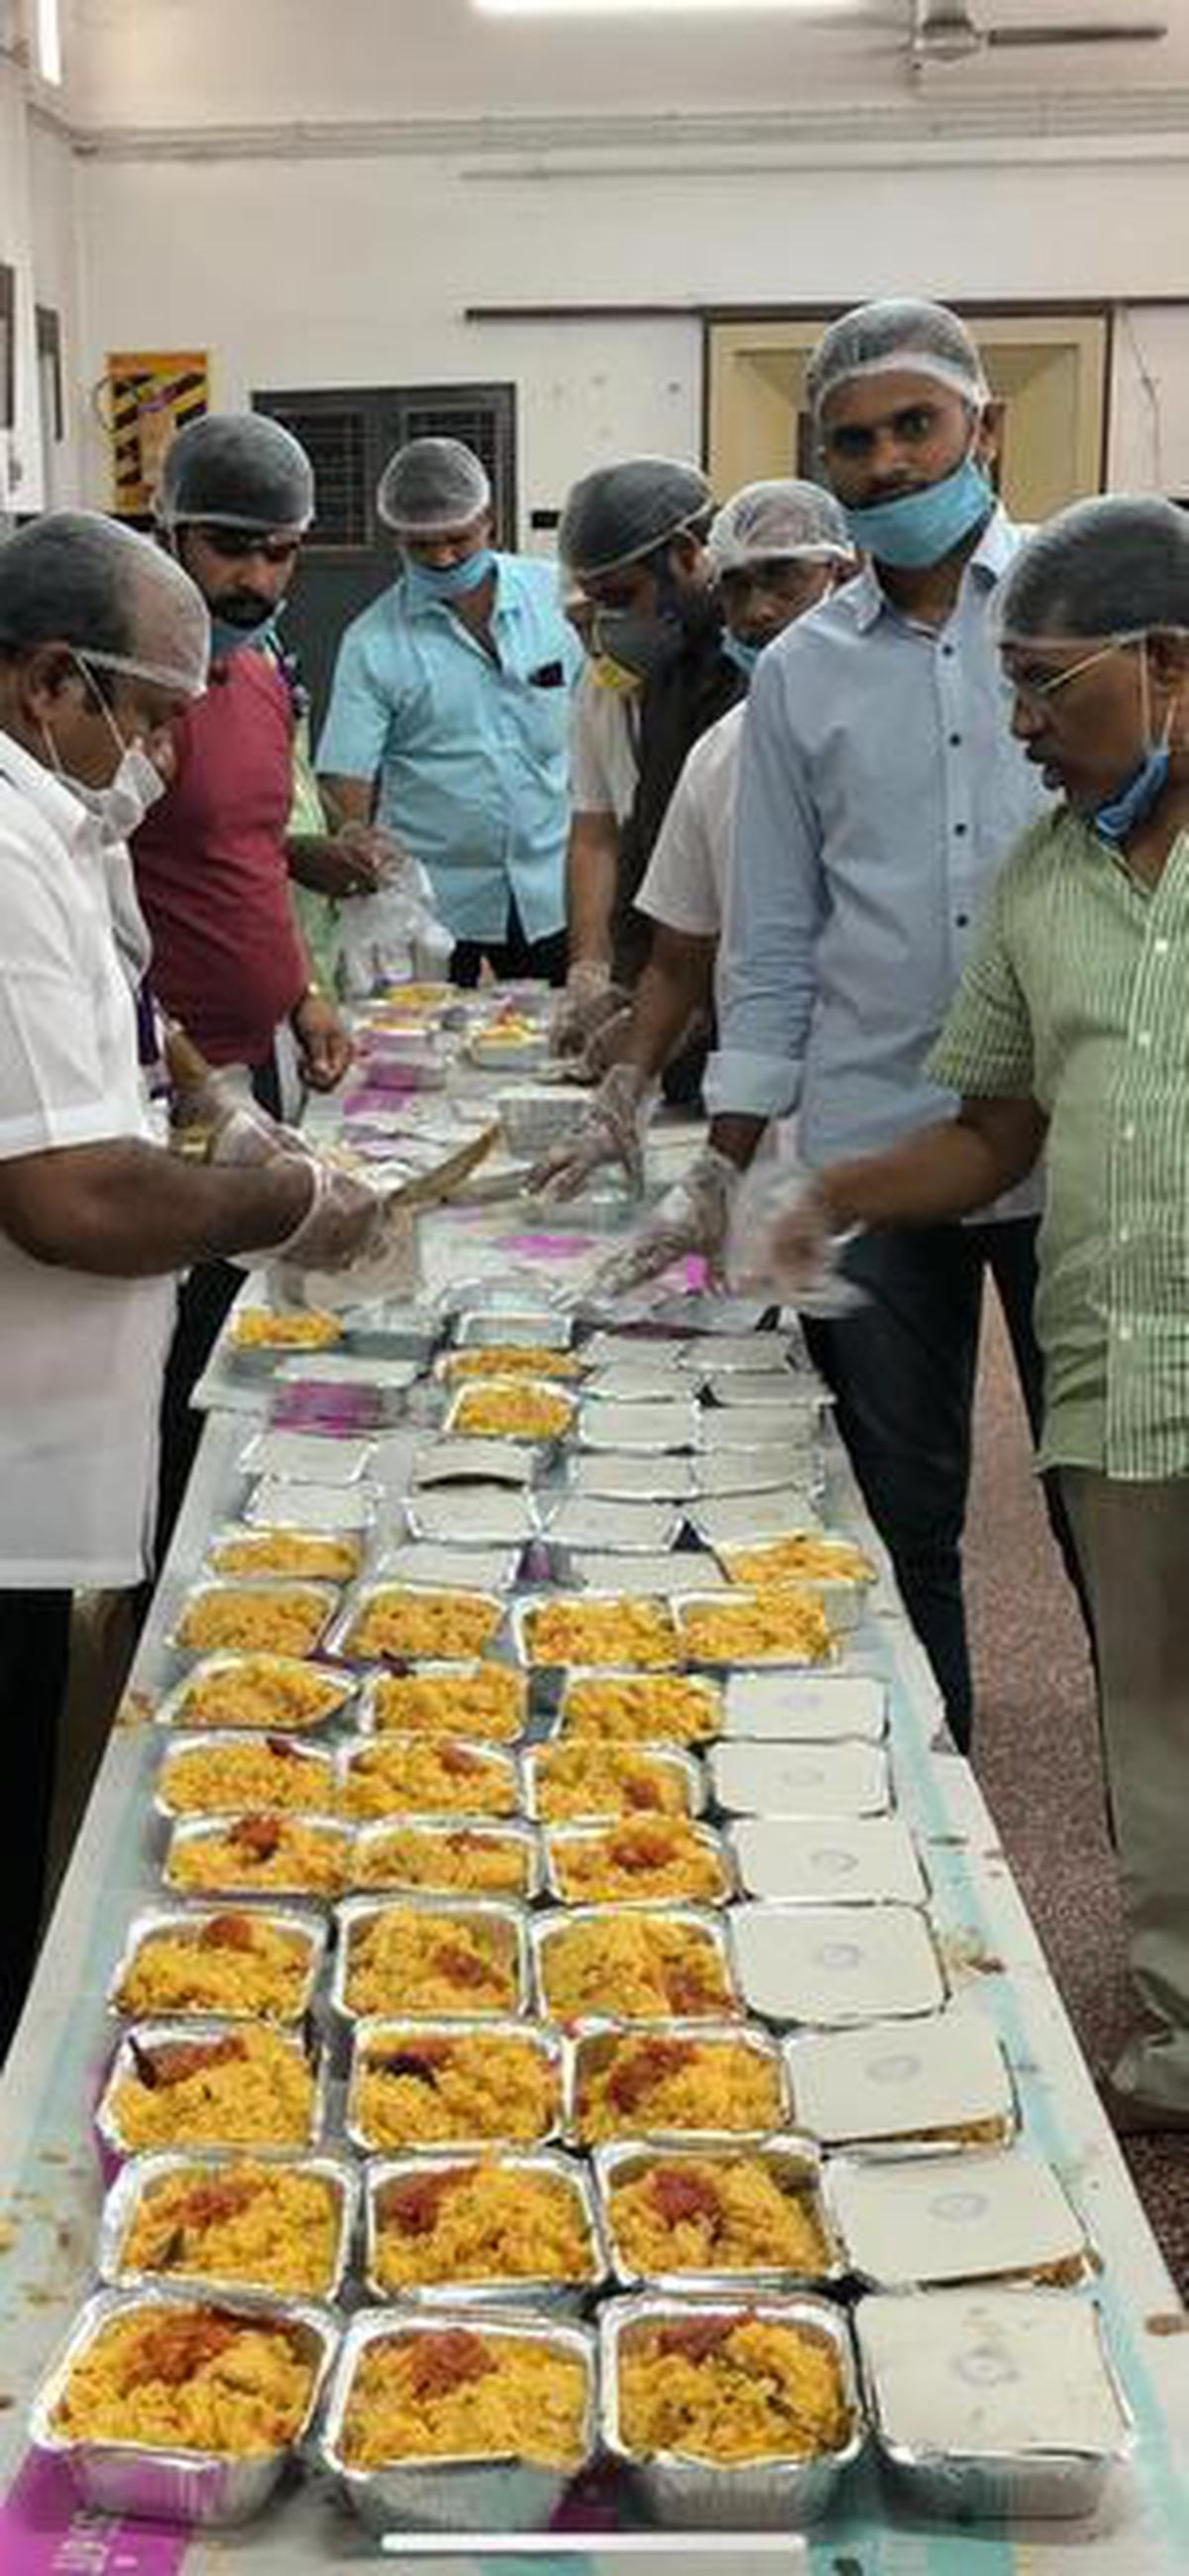 The Coimbatore Catering Owners Association prepares food for workers in the villages of the Coimbatore North Zone